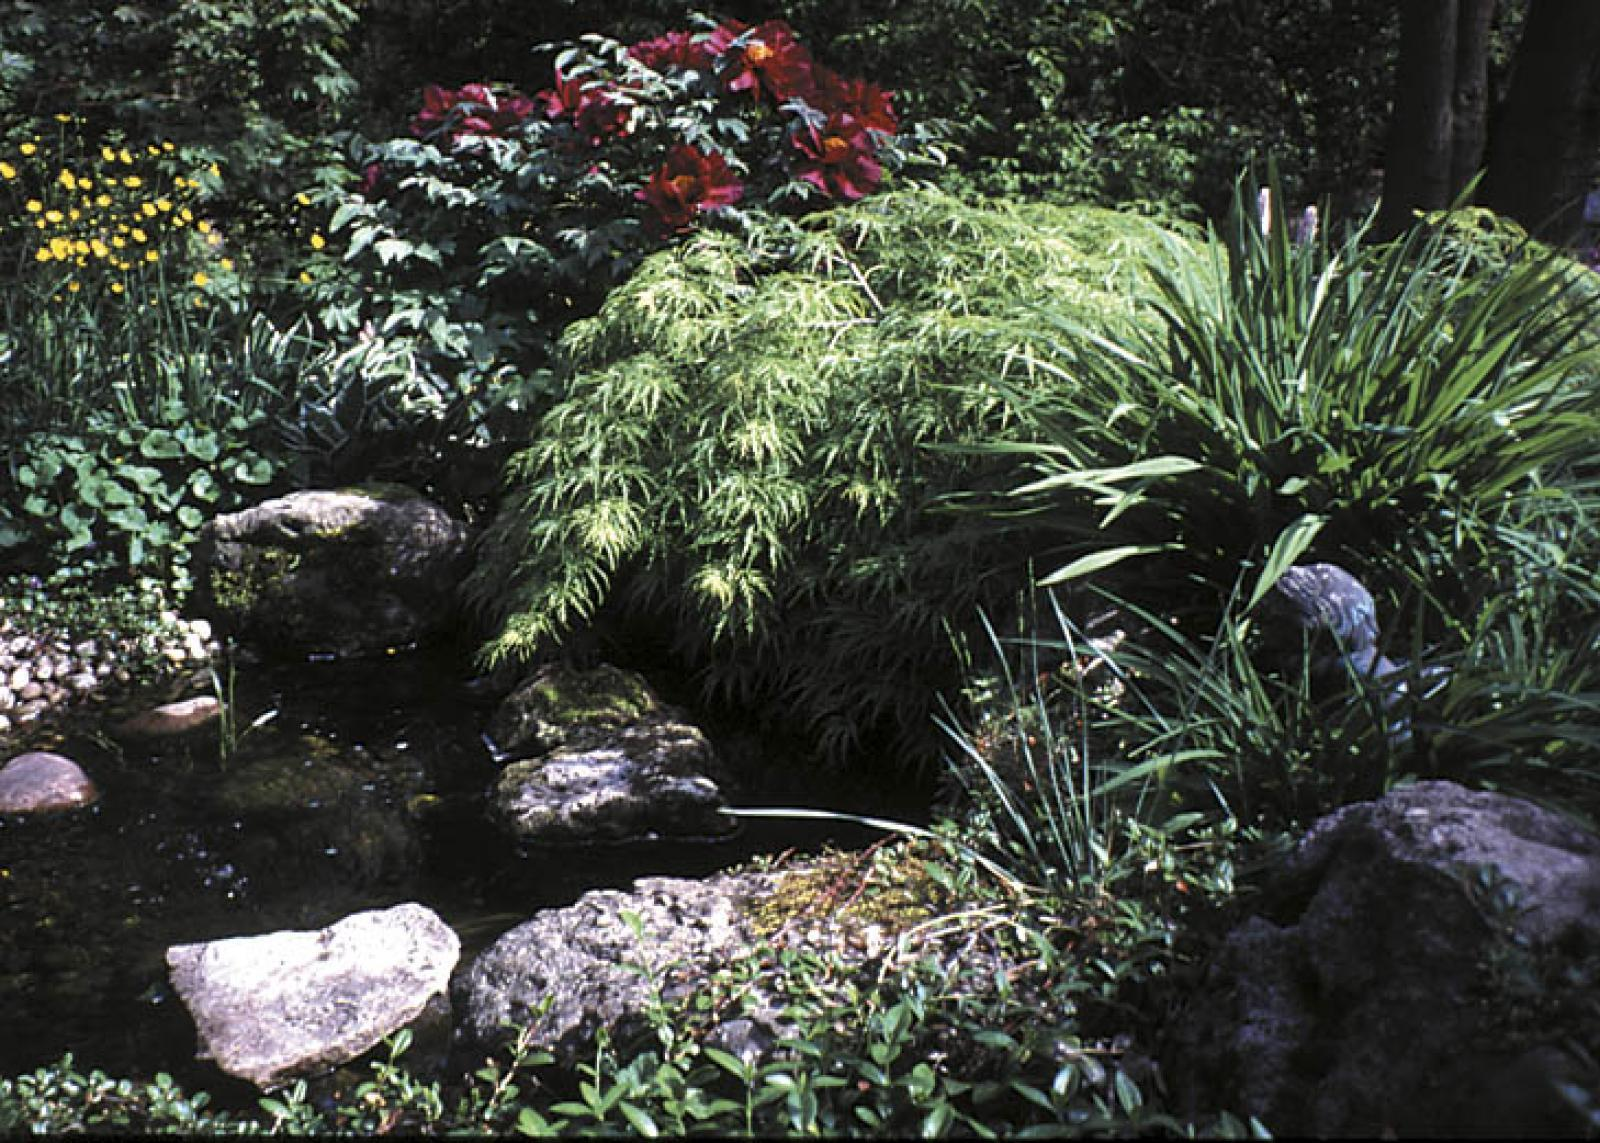 A garden that connects with our senses through water seems more exciting, complete and memorable.